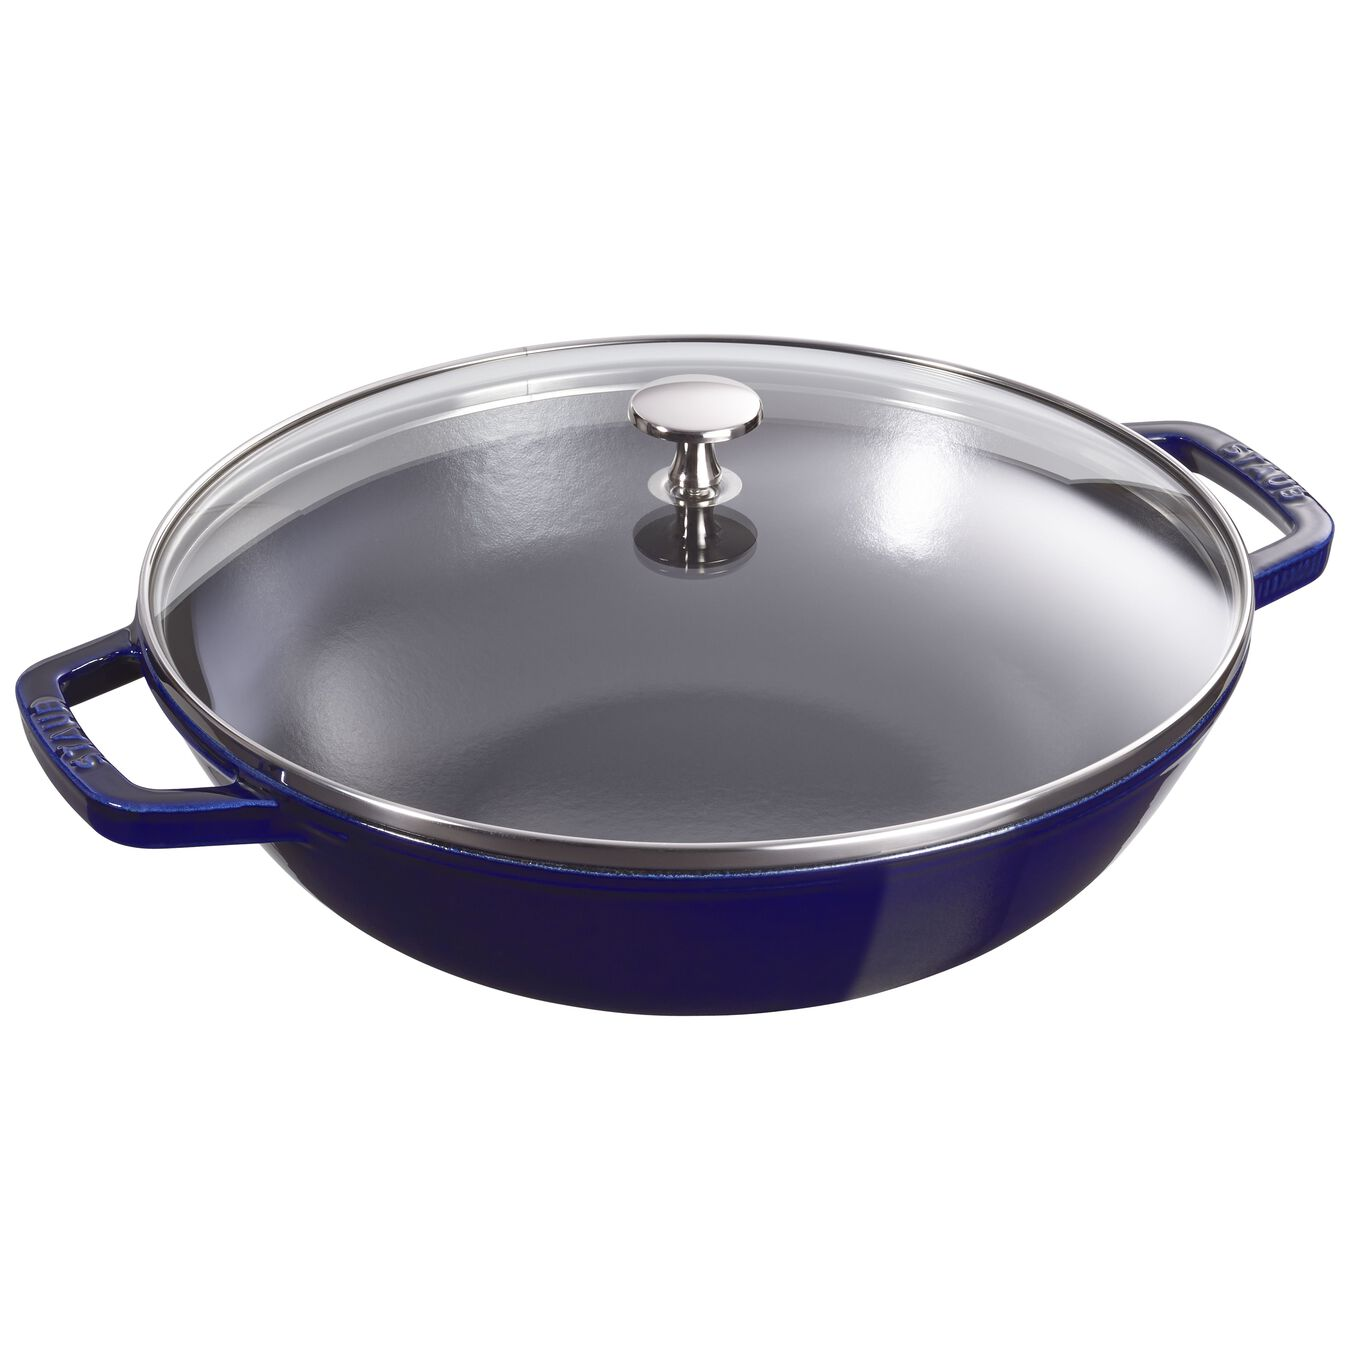 30 cm / 12 inch Wok with glass lid, dark-blue,,large 1